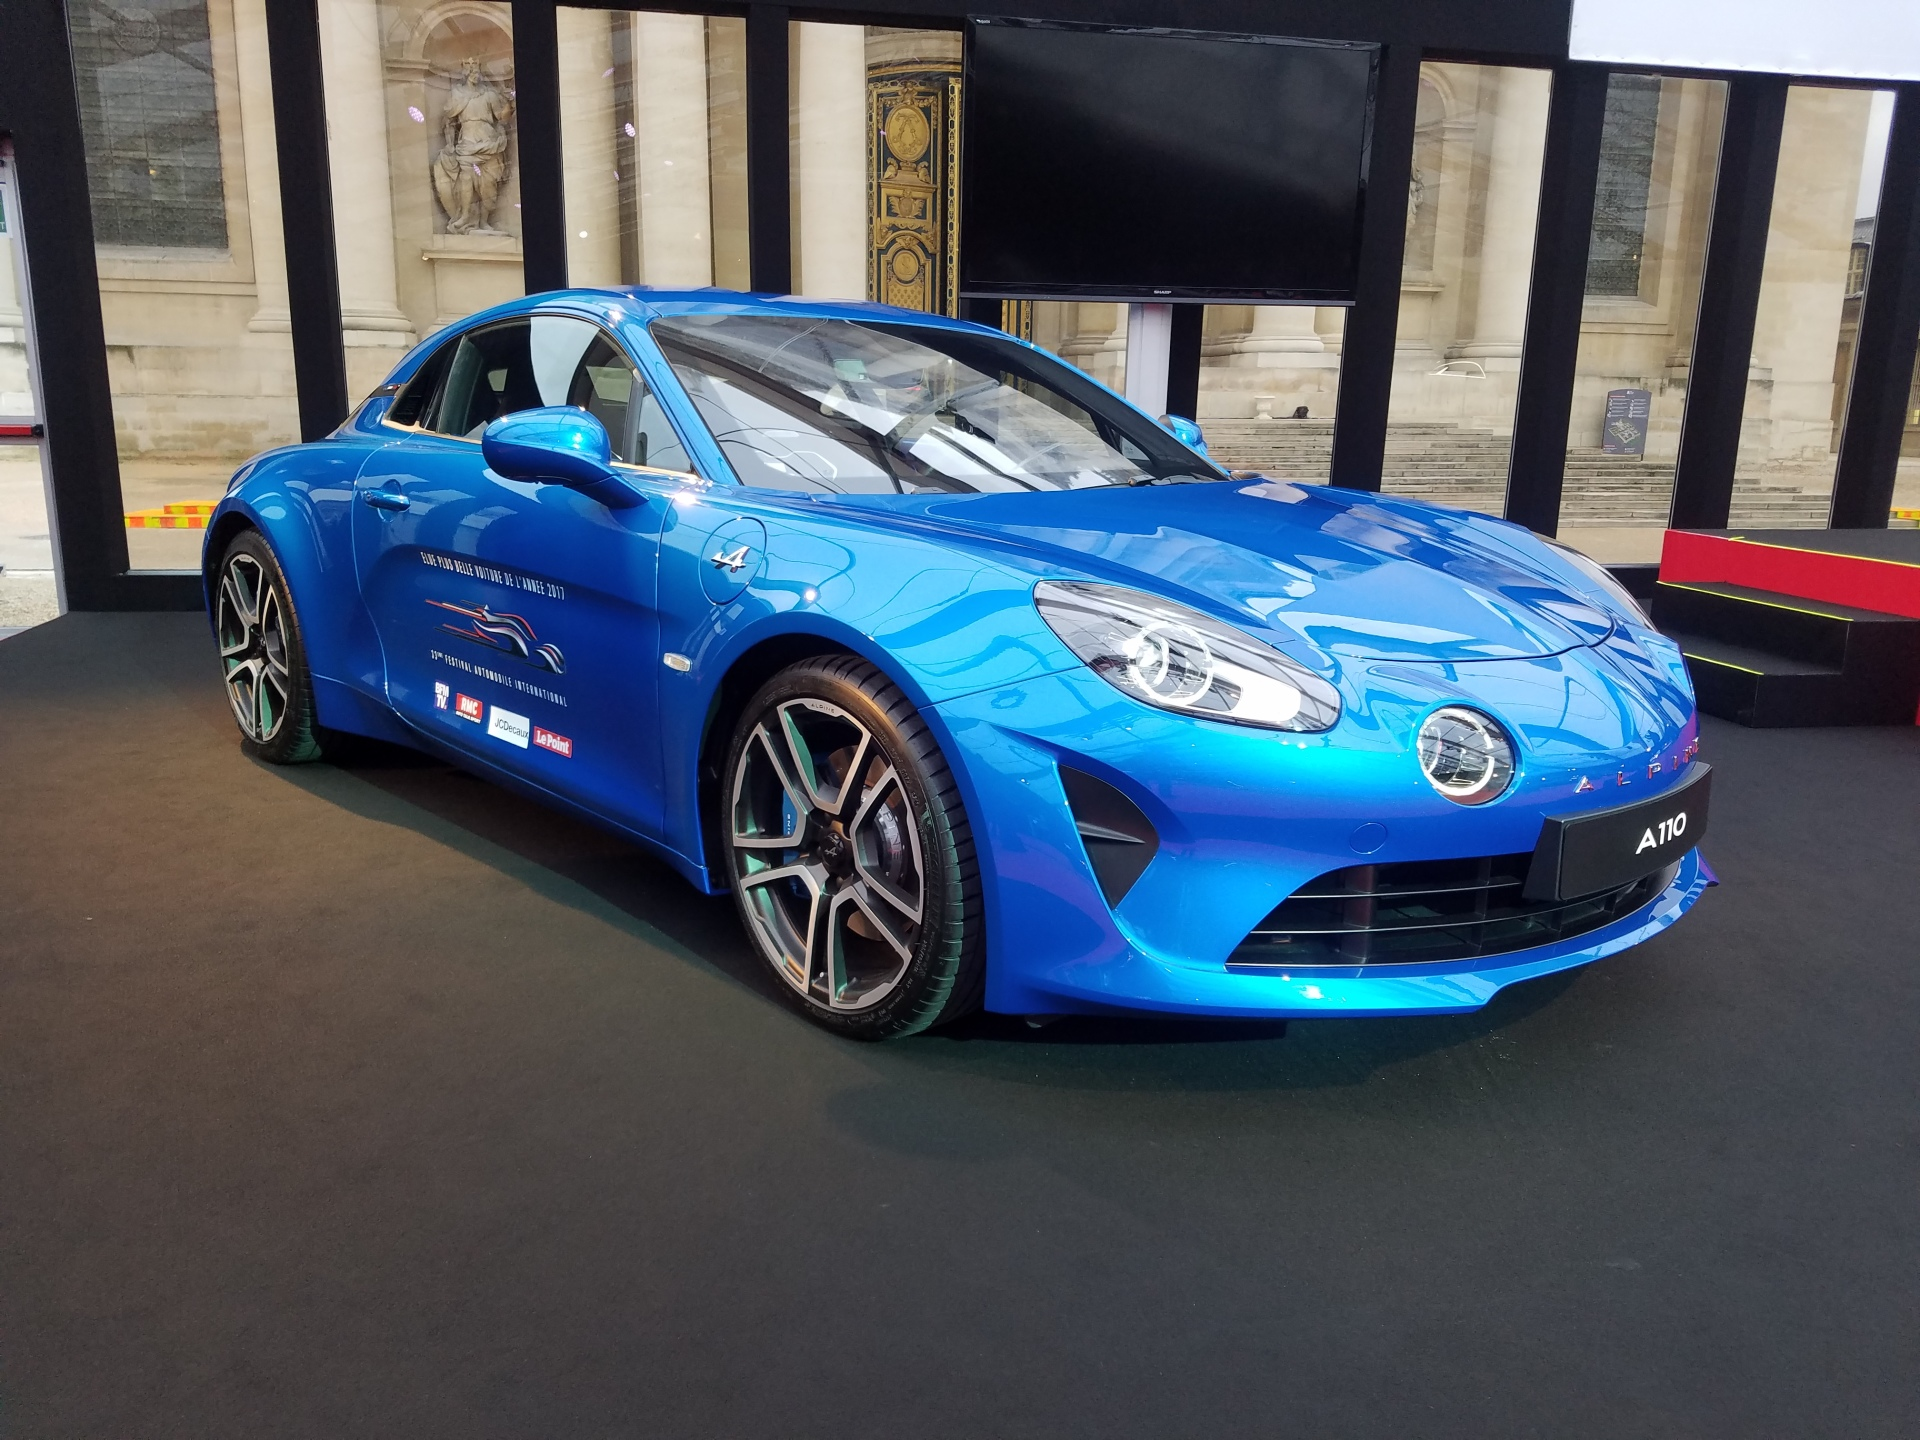 l 39 alpine a110 plus belle voiture de l 39 ann e au festival automobile photo 1 l 39 argus. Black Bedroom Furniture Sets. Home Design Ideas